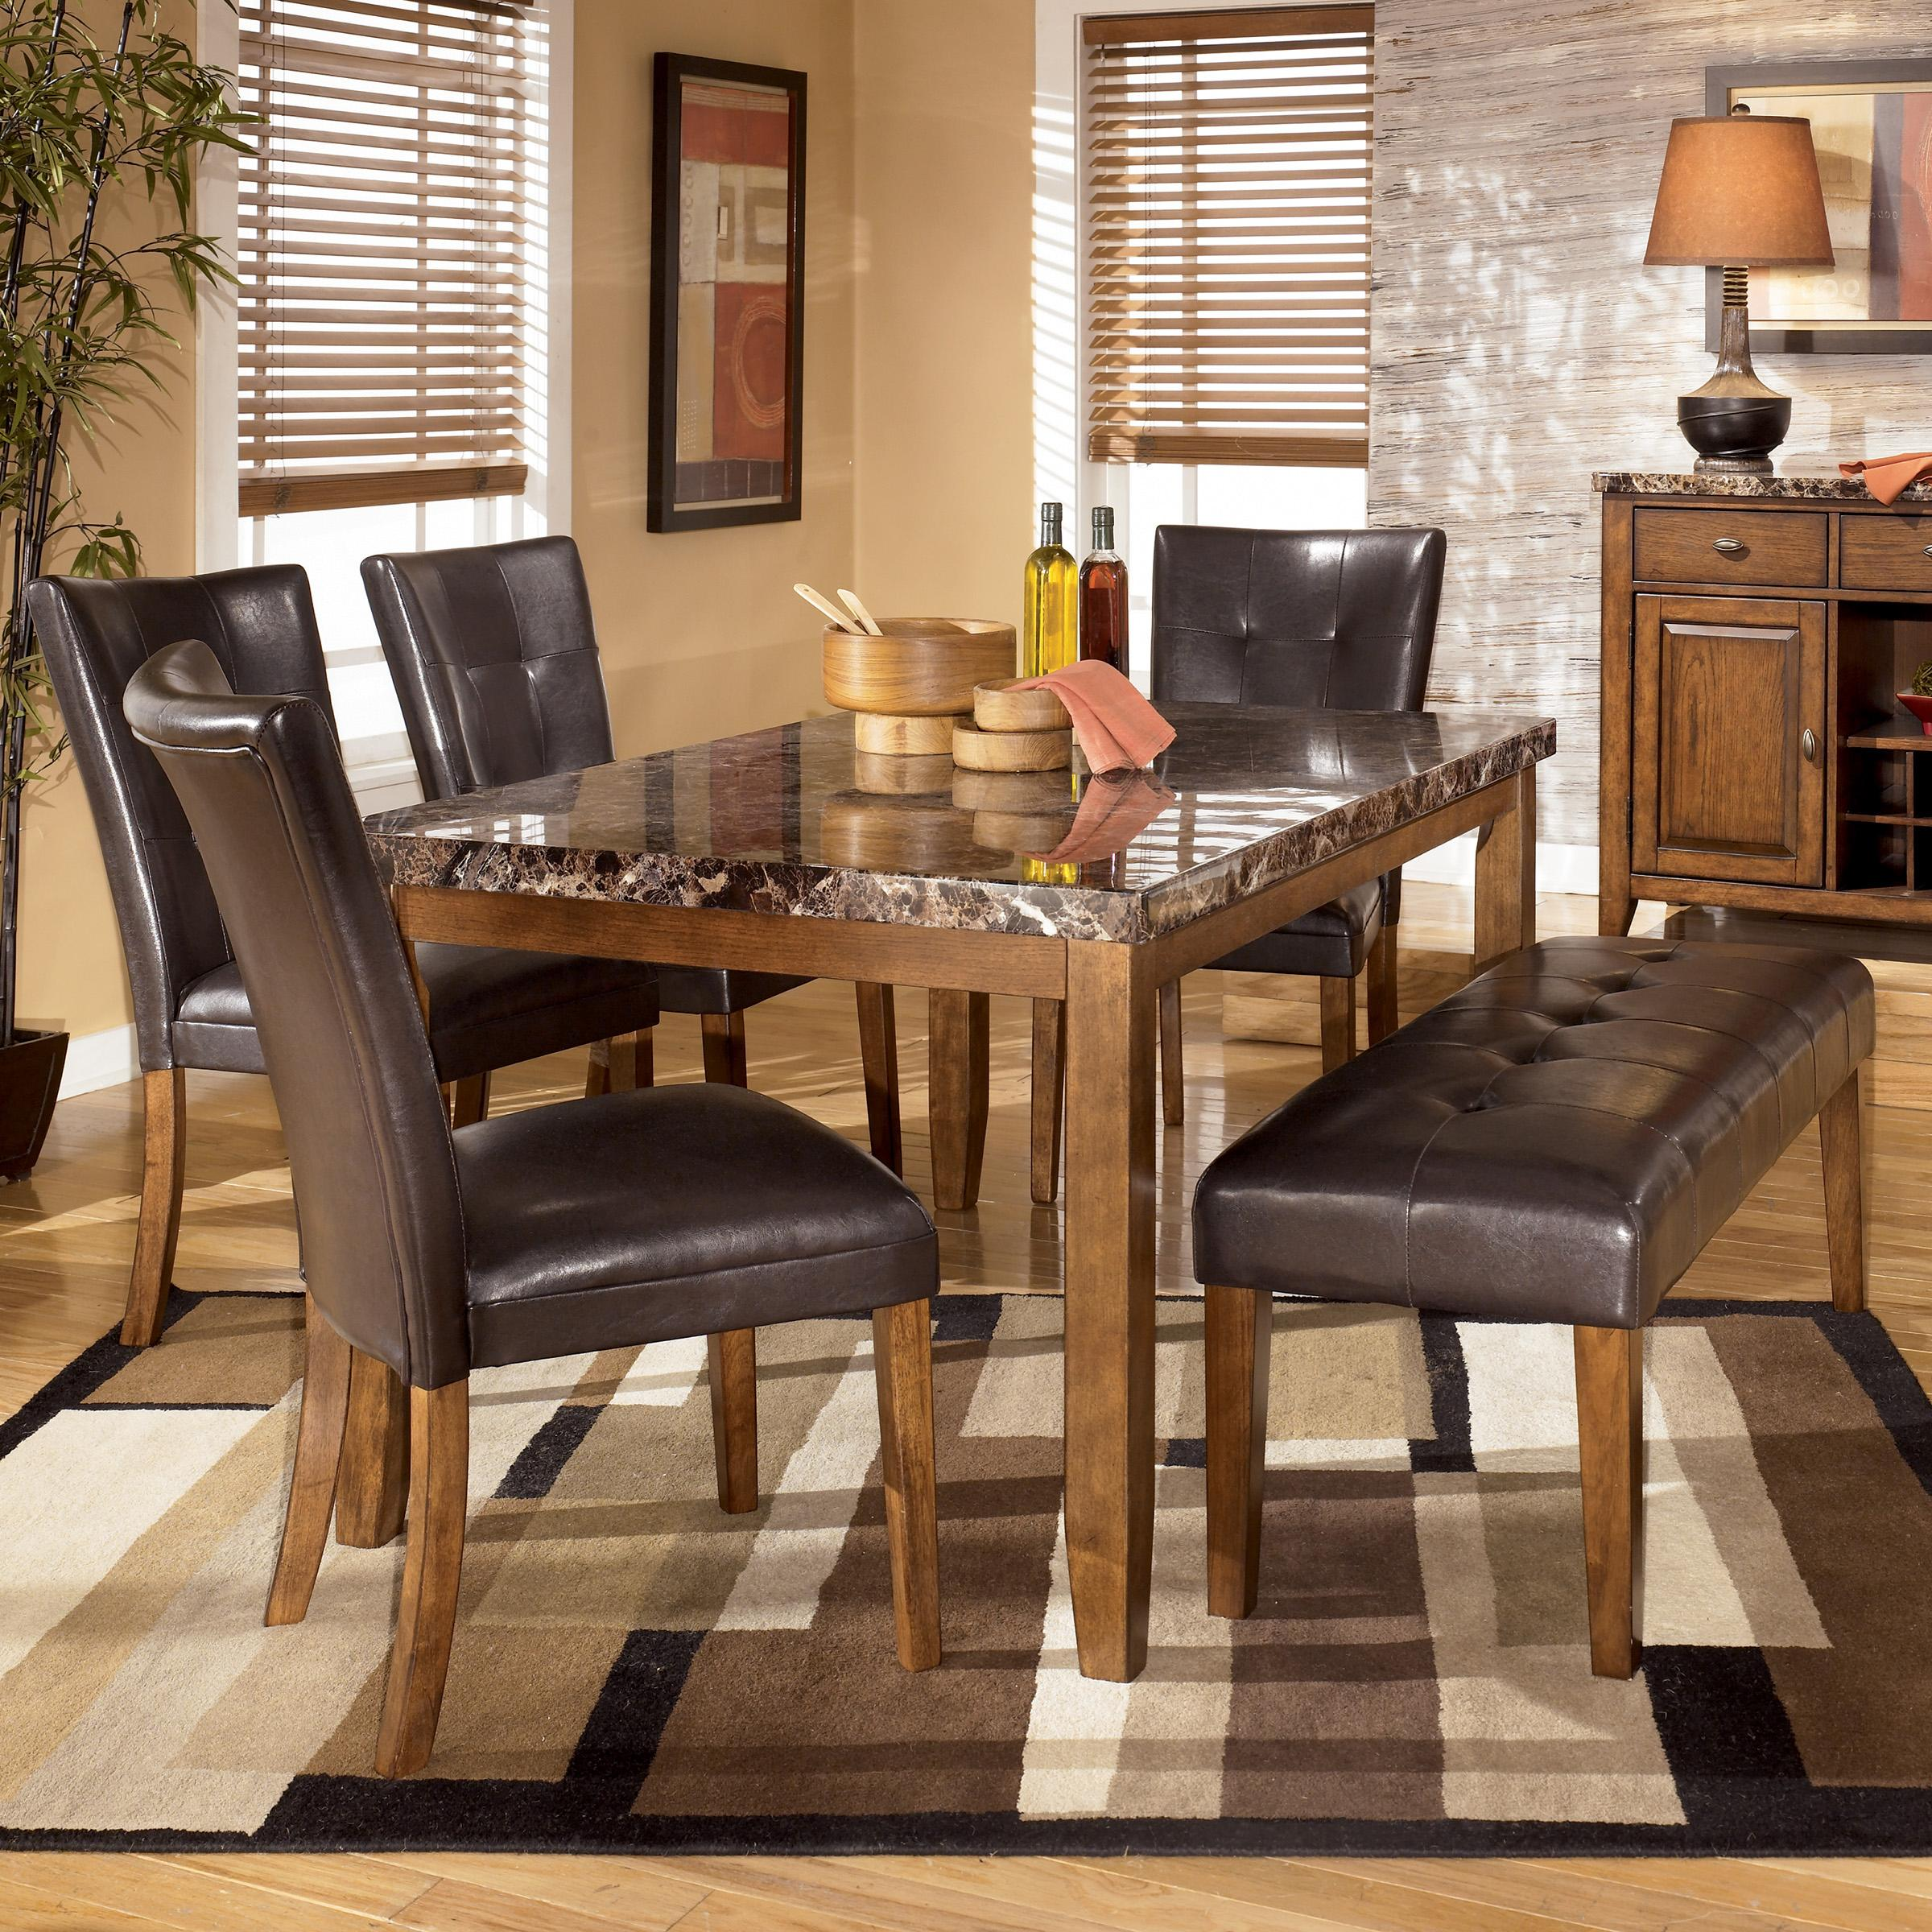 Lacey 6-Piece Dining Table, Chairs, & Bench Set by Ashley (Signature Design) at Johnny Janosik